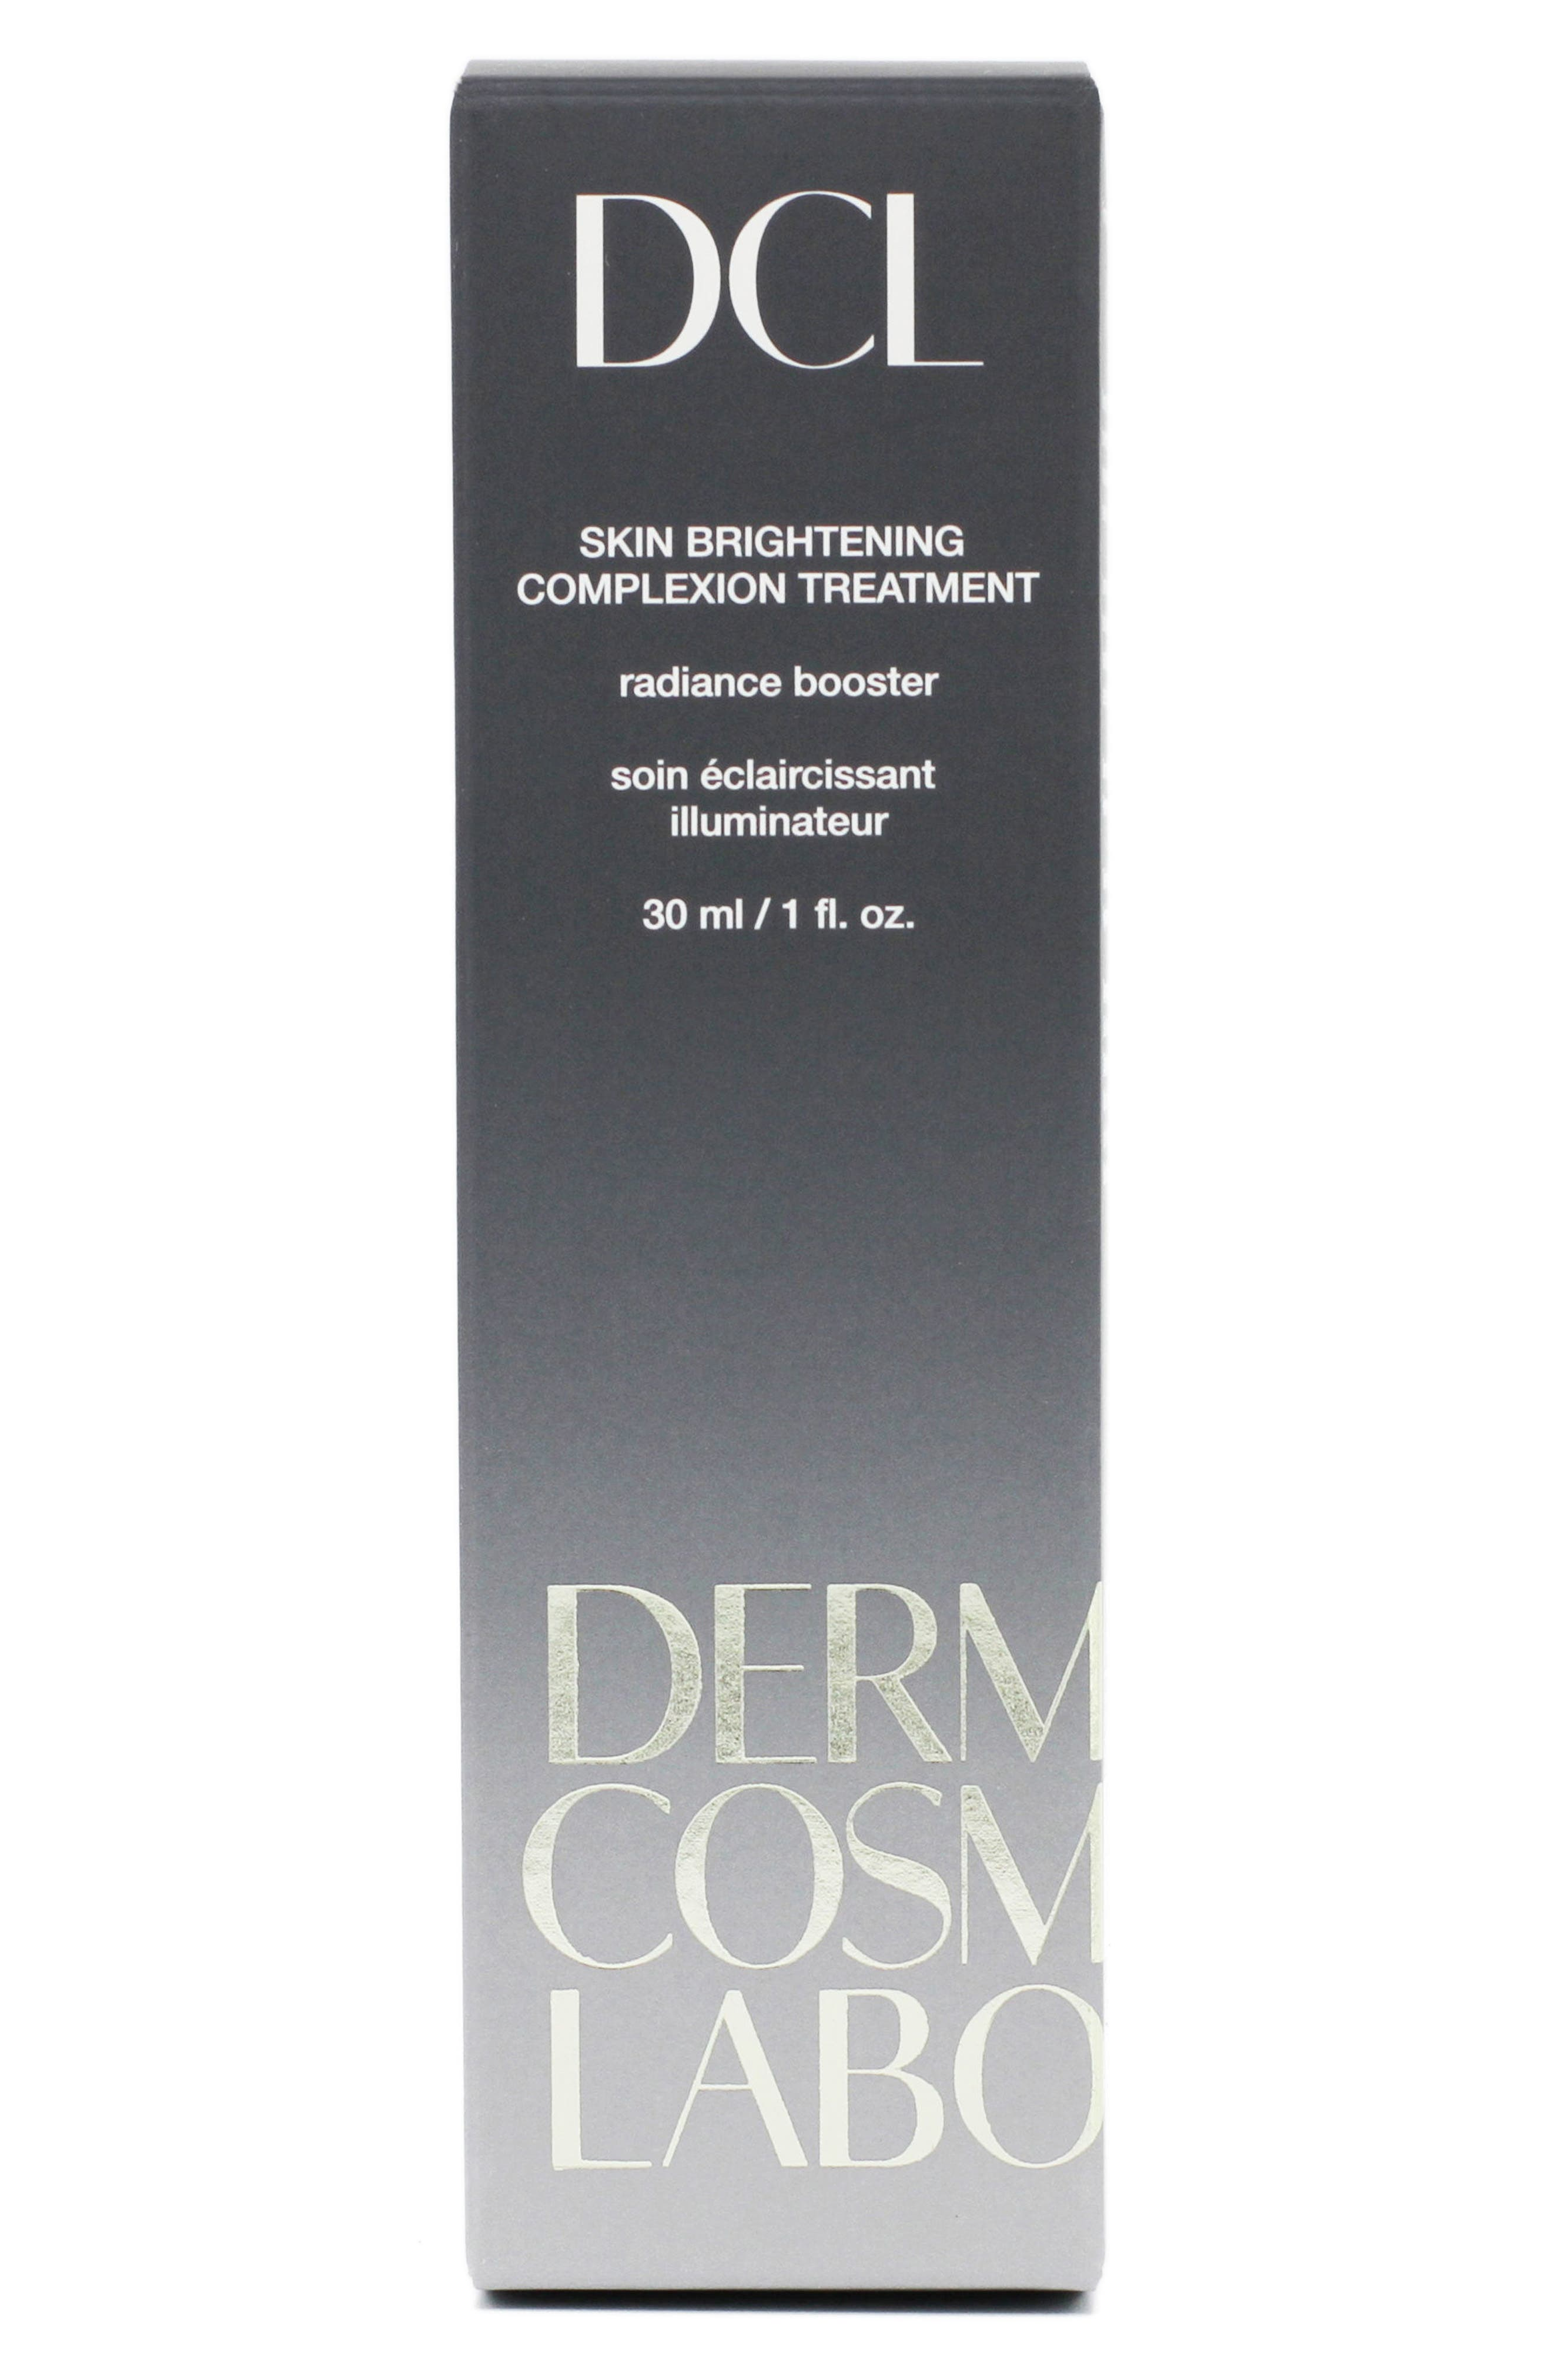 DERMATOLOGIC COSMETIC LABORATORIES,                             Skin Brightening Complexion Treatment,                             Alternate thumbnail 2, color,                             NO COLOR